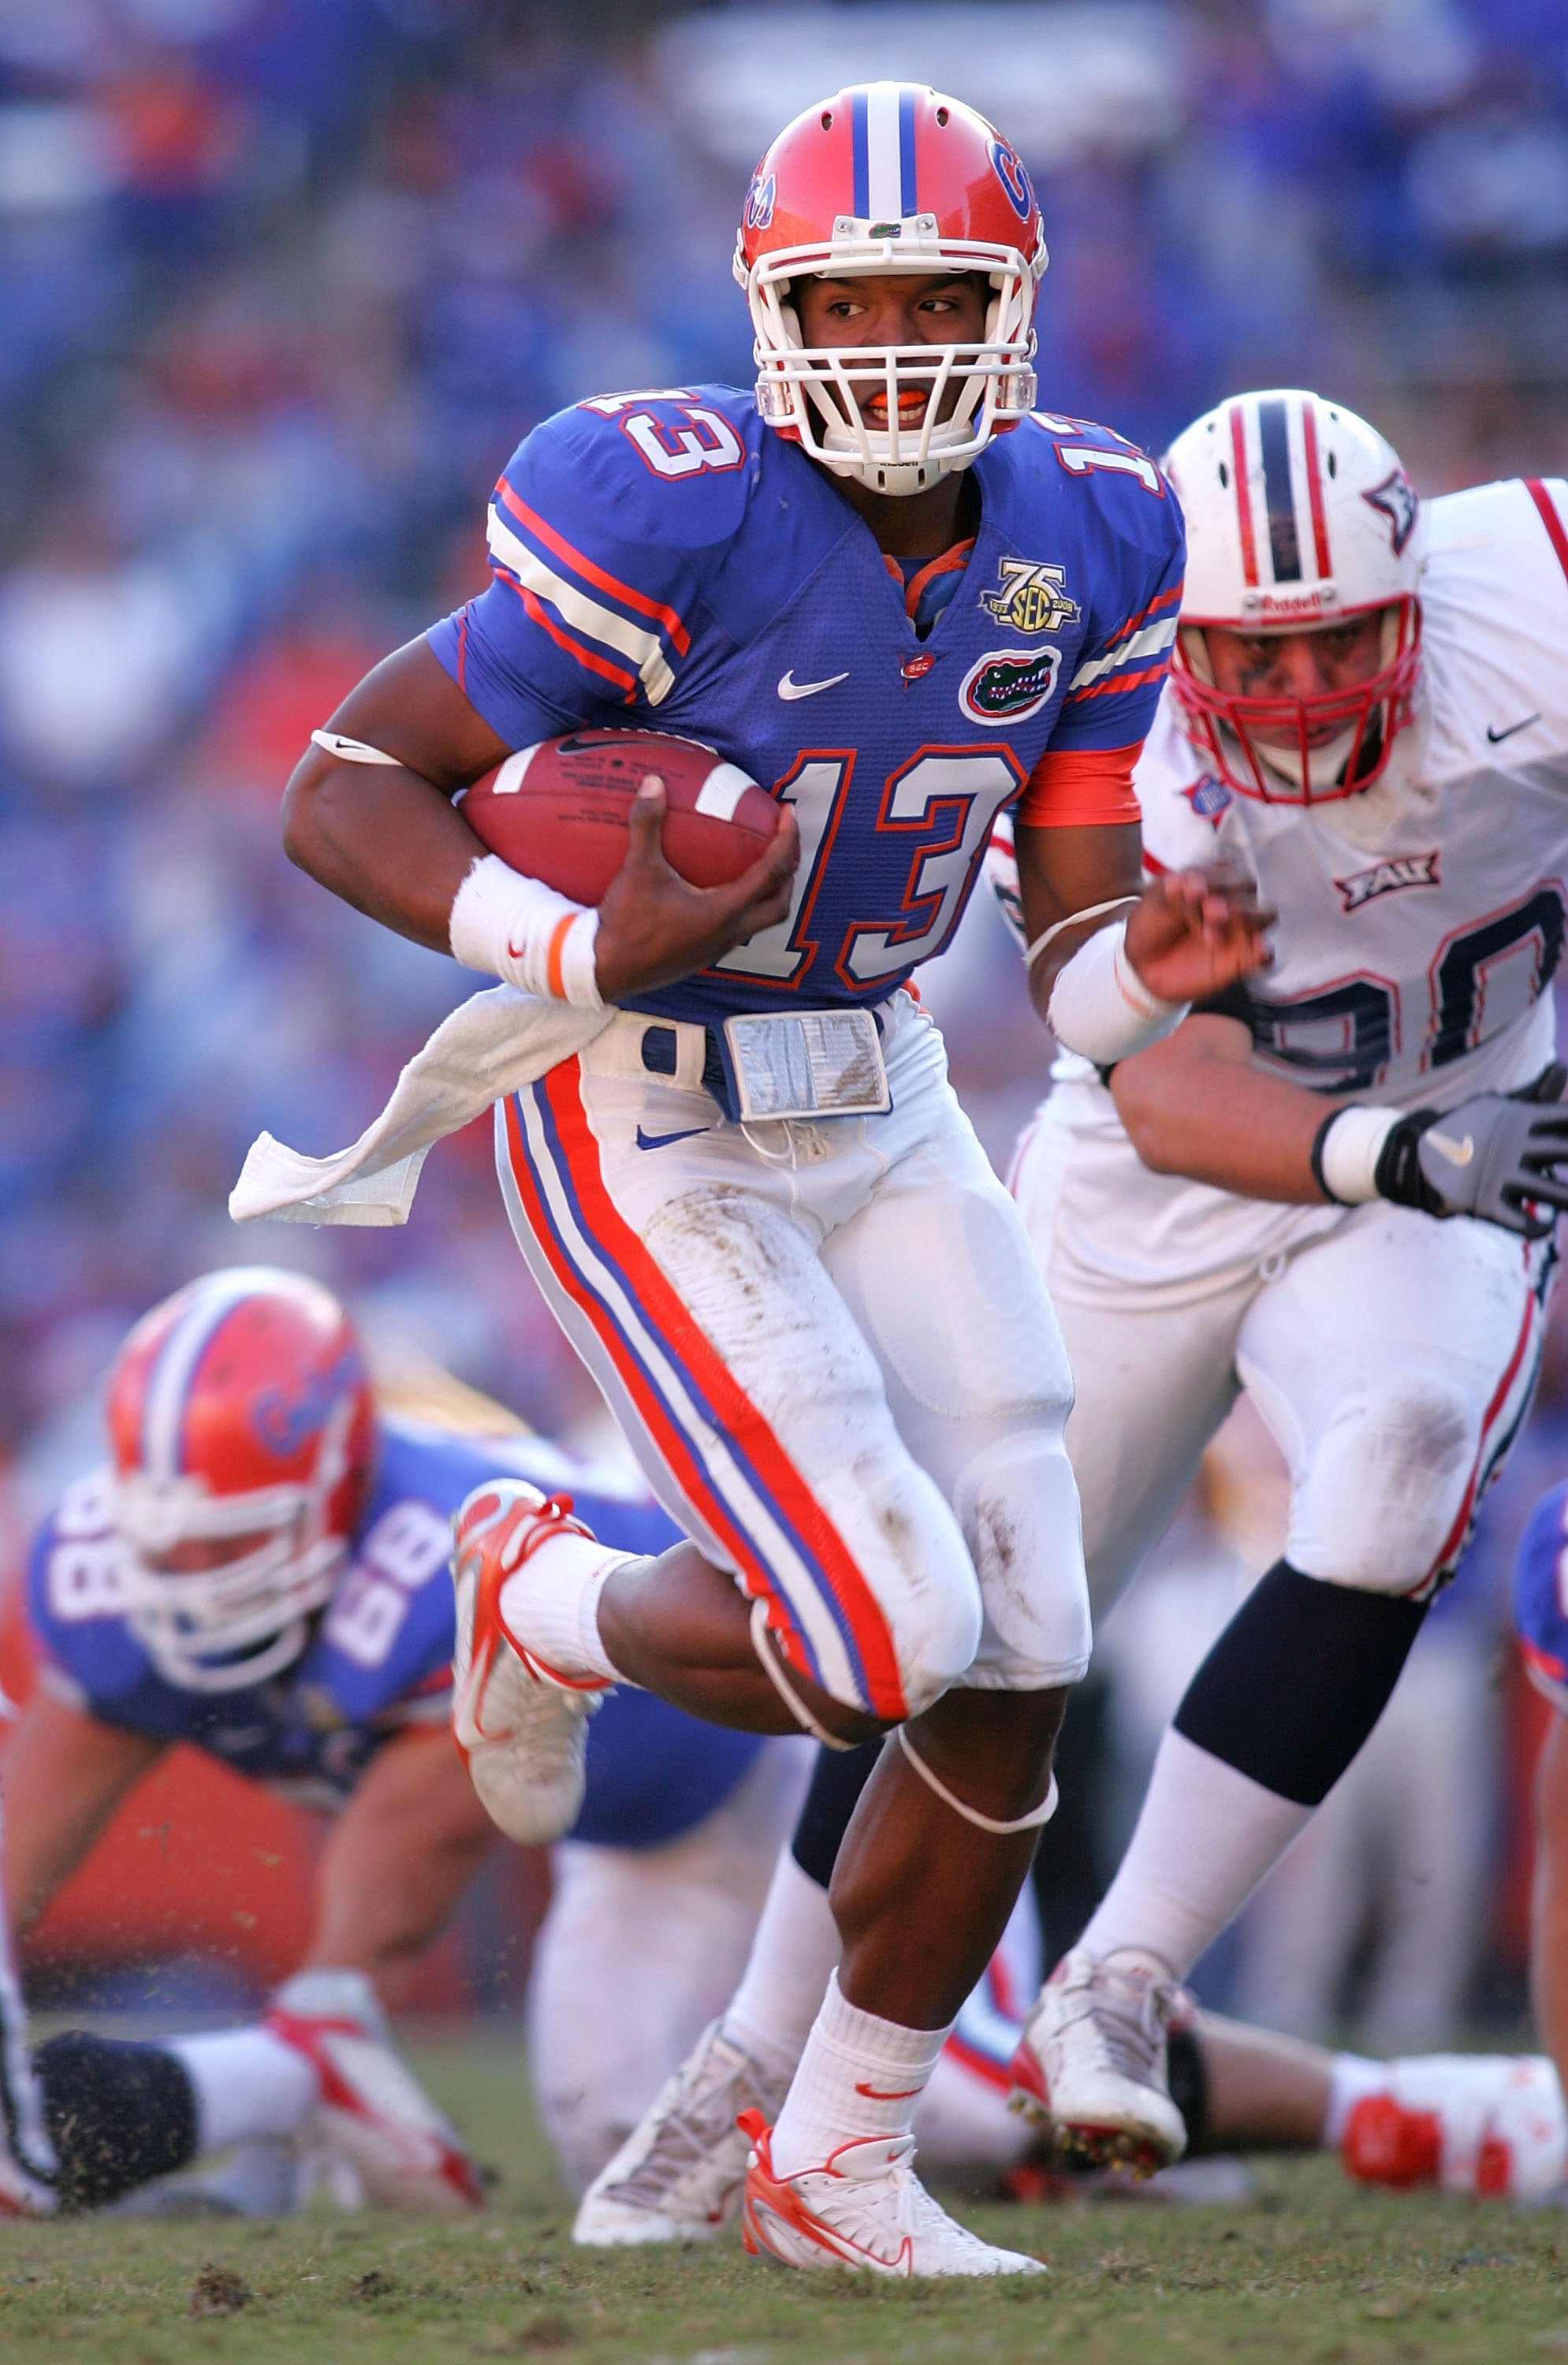 GAINESVILLE, FL - NOVEMBER 17:  Cameron Newton of the Florida Gators breaks a tackle during a  game against the FAU Owls at Ben Hill Griffin Stadium on November 17, 2007 in Gainesville, Florida.  (Photo by Sam Greenwood/Getty Images)